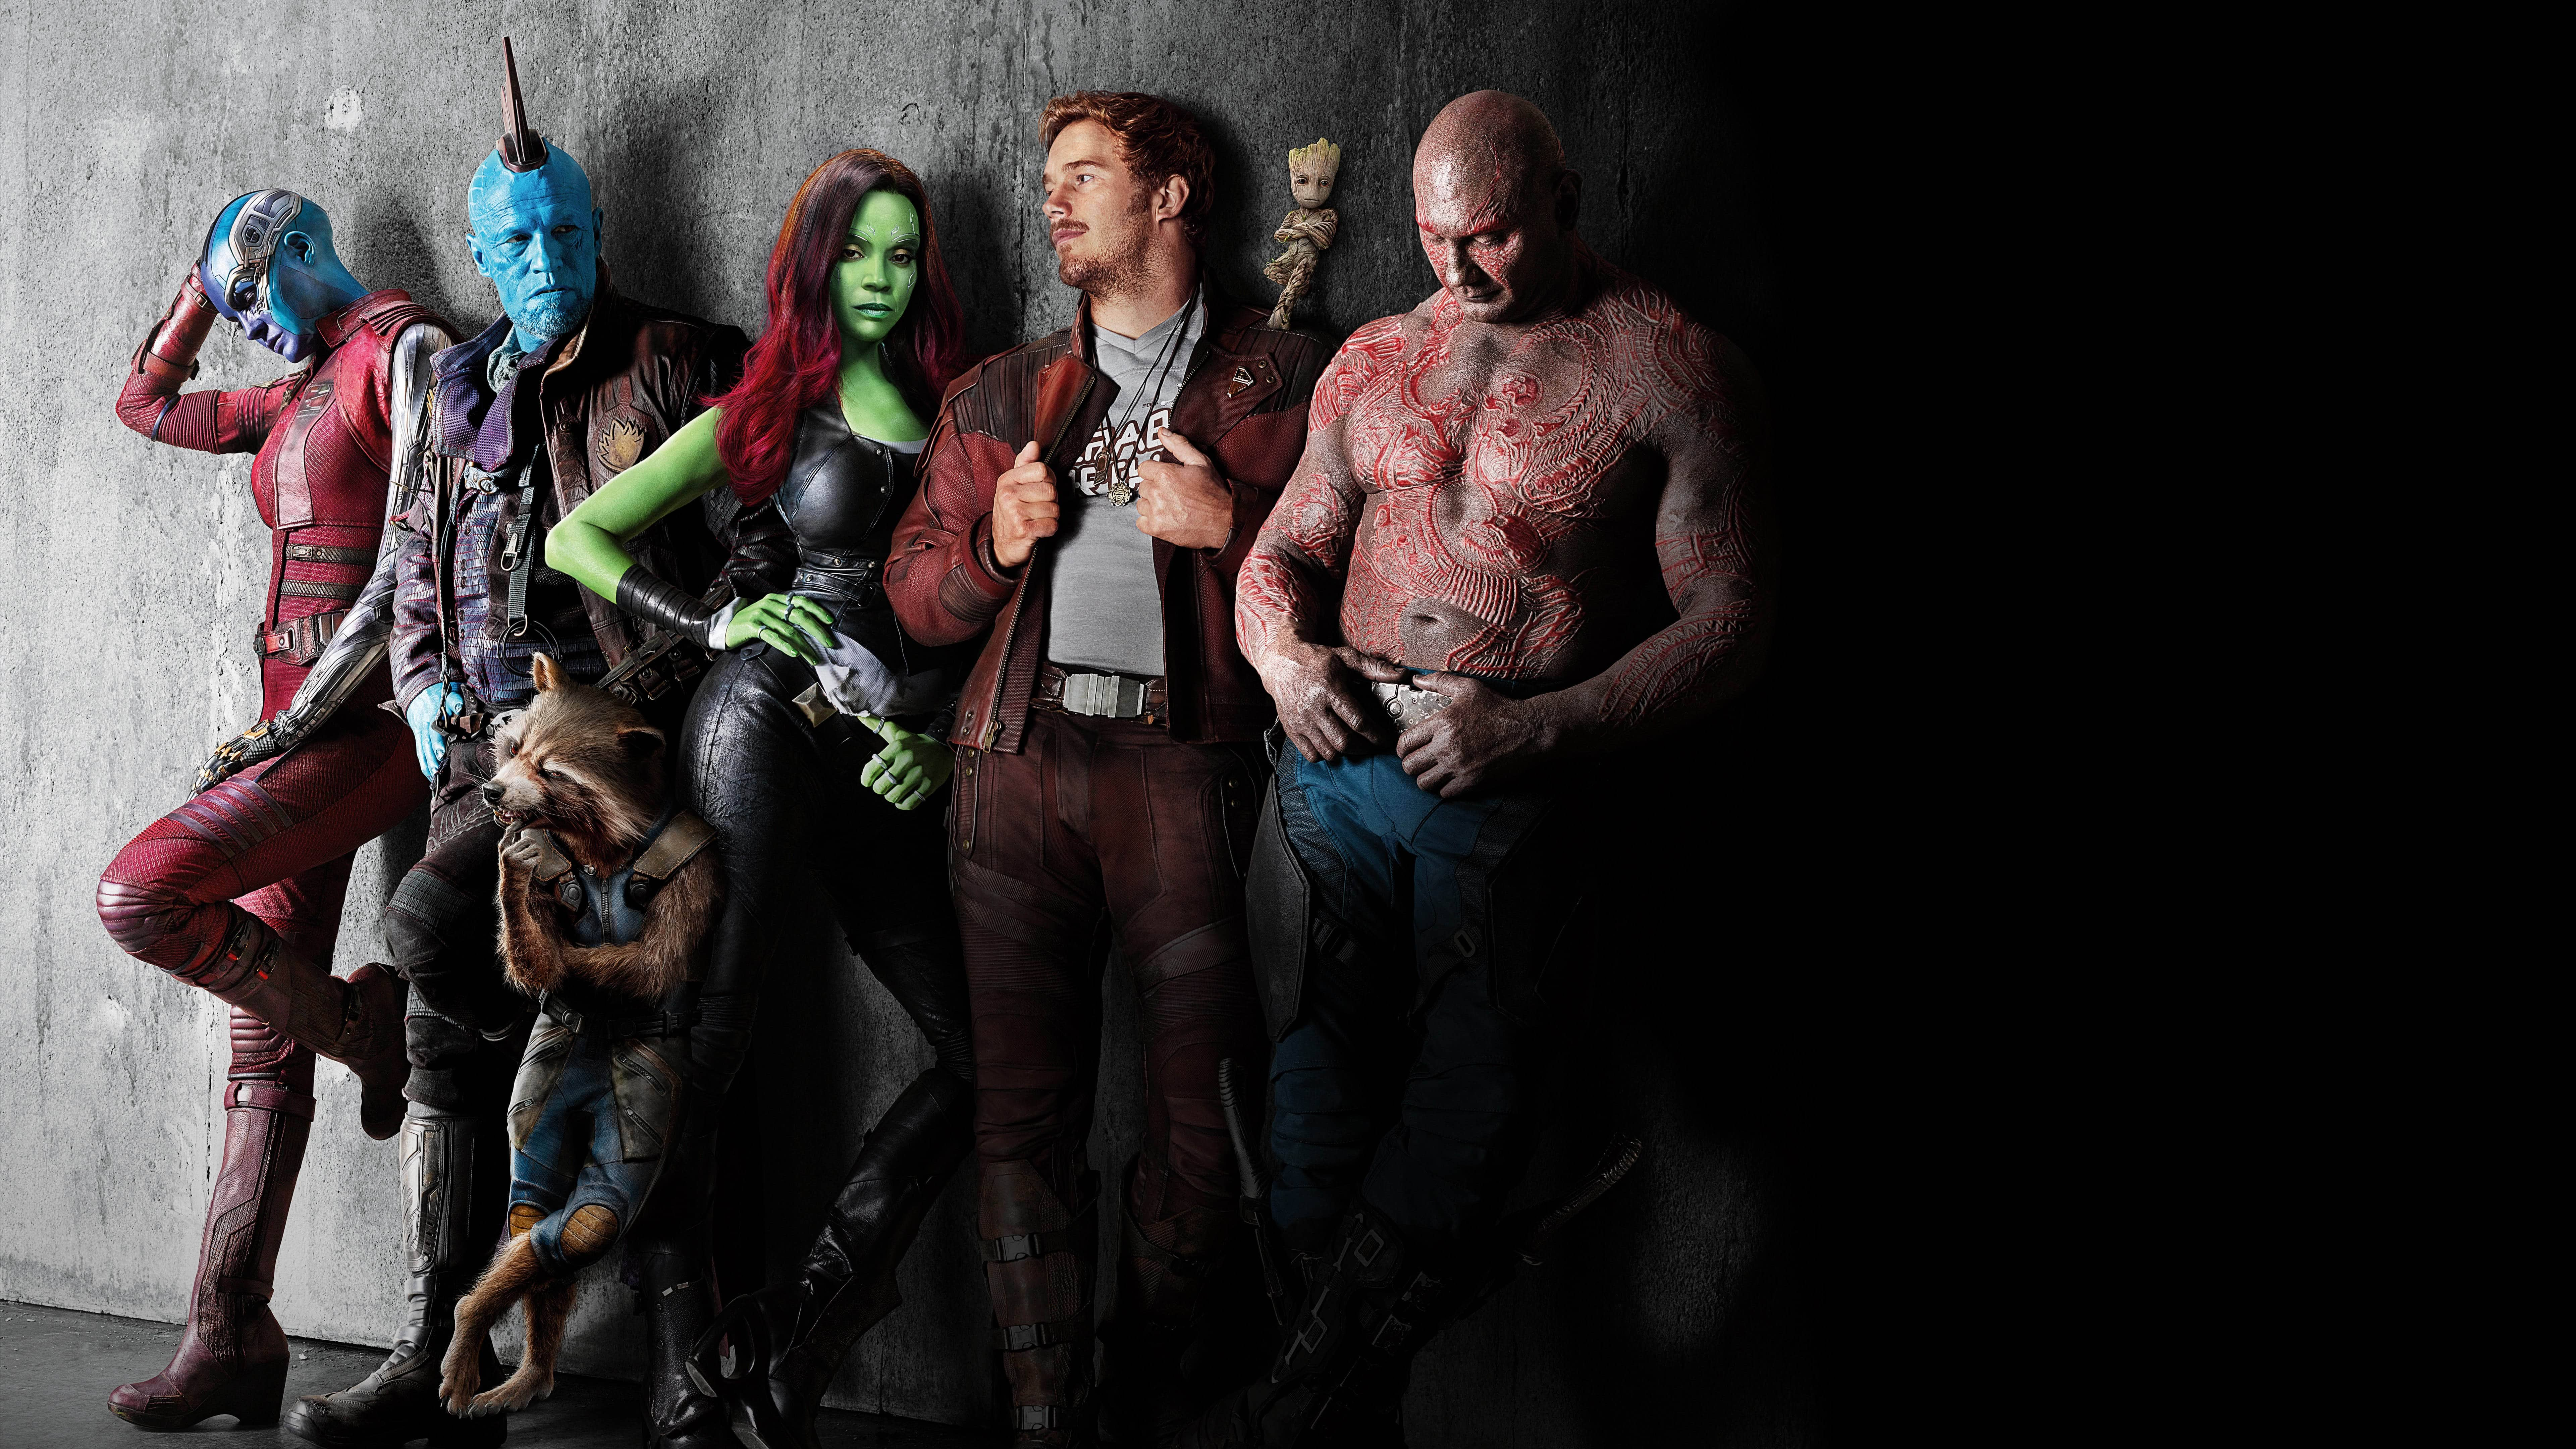 Simple Wallpaper Marvel Guardians The Galaxy - guardians-of-the-galaxy-vol-2-uhd-8k-wallpaper-1  Perfect Image Reference_129112.jpg